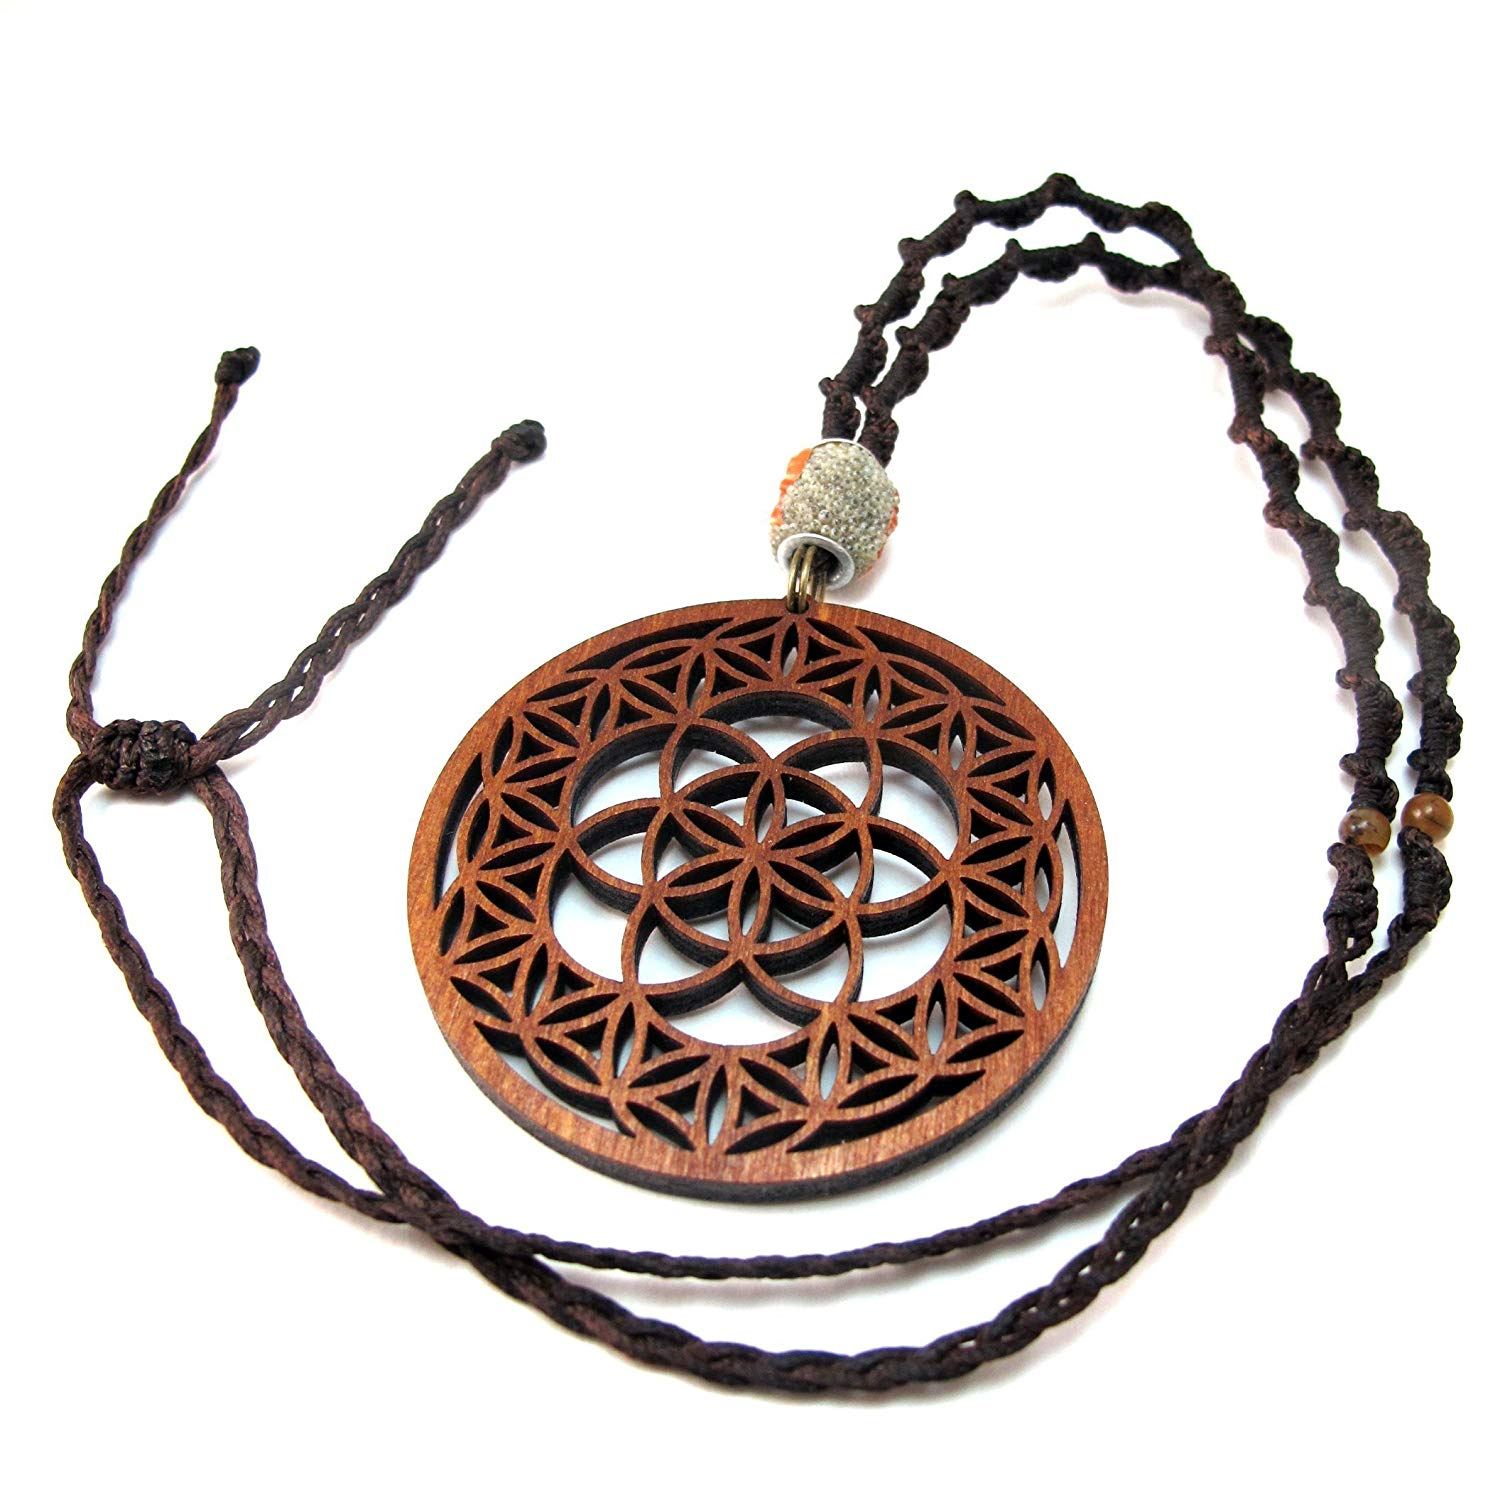 Long Macrame Pendant Necklace Seed of Life in Flower of Life, 15'' - 30'', Sacred Geometry jewelry